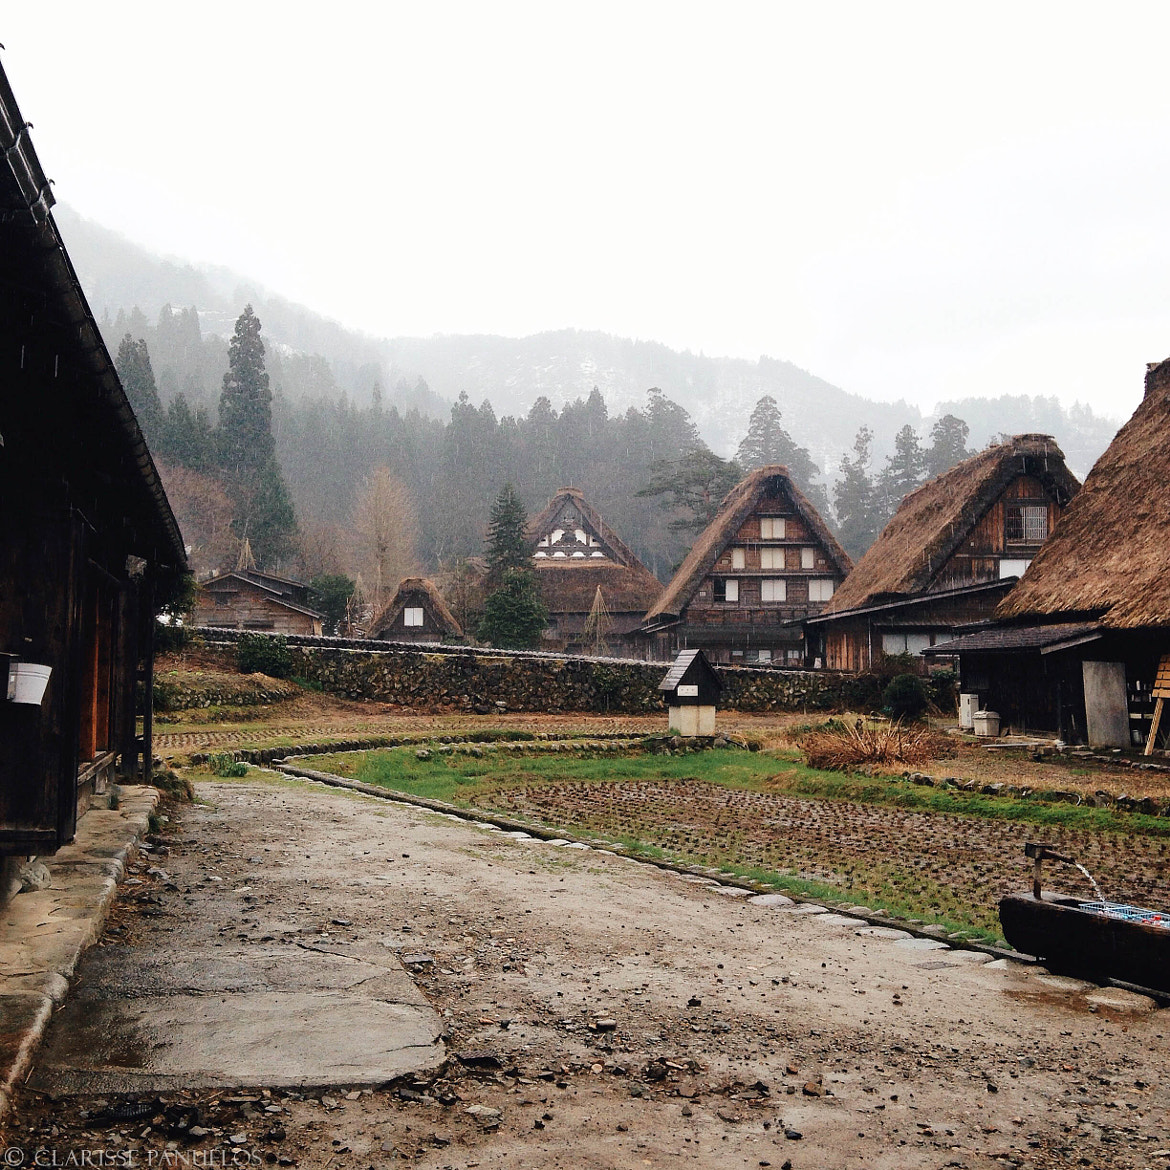 5f4a8e8f8bed822a4e52b94114a1afd3 - Japan Travel Blog April 2015: Shirakawa-go